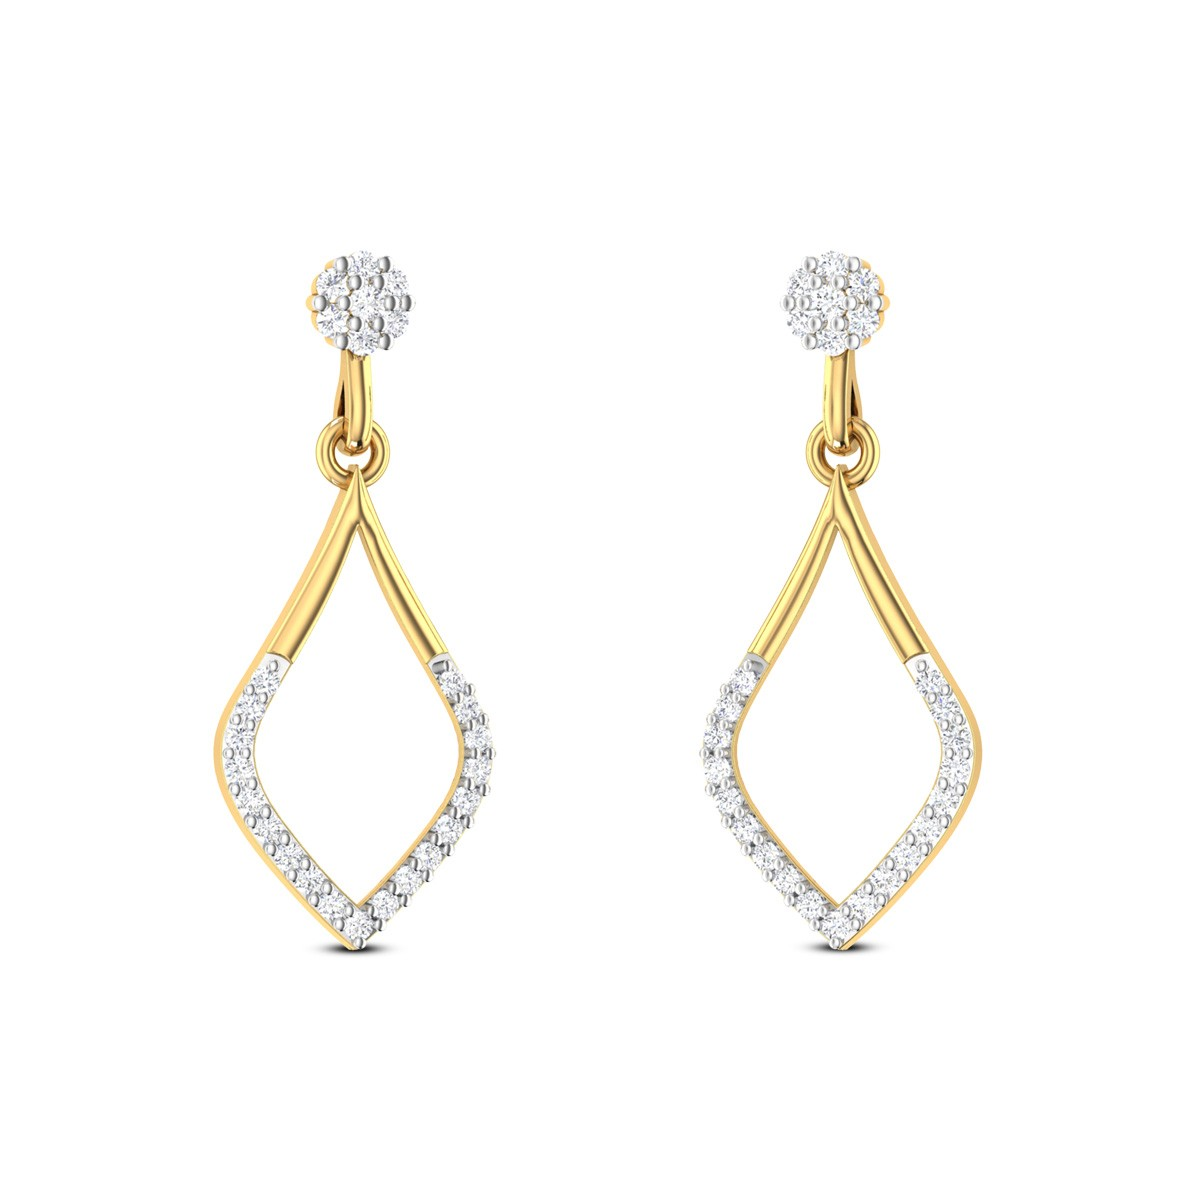 Avon Diamond Earrings